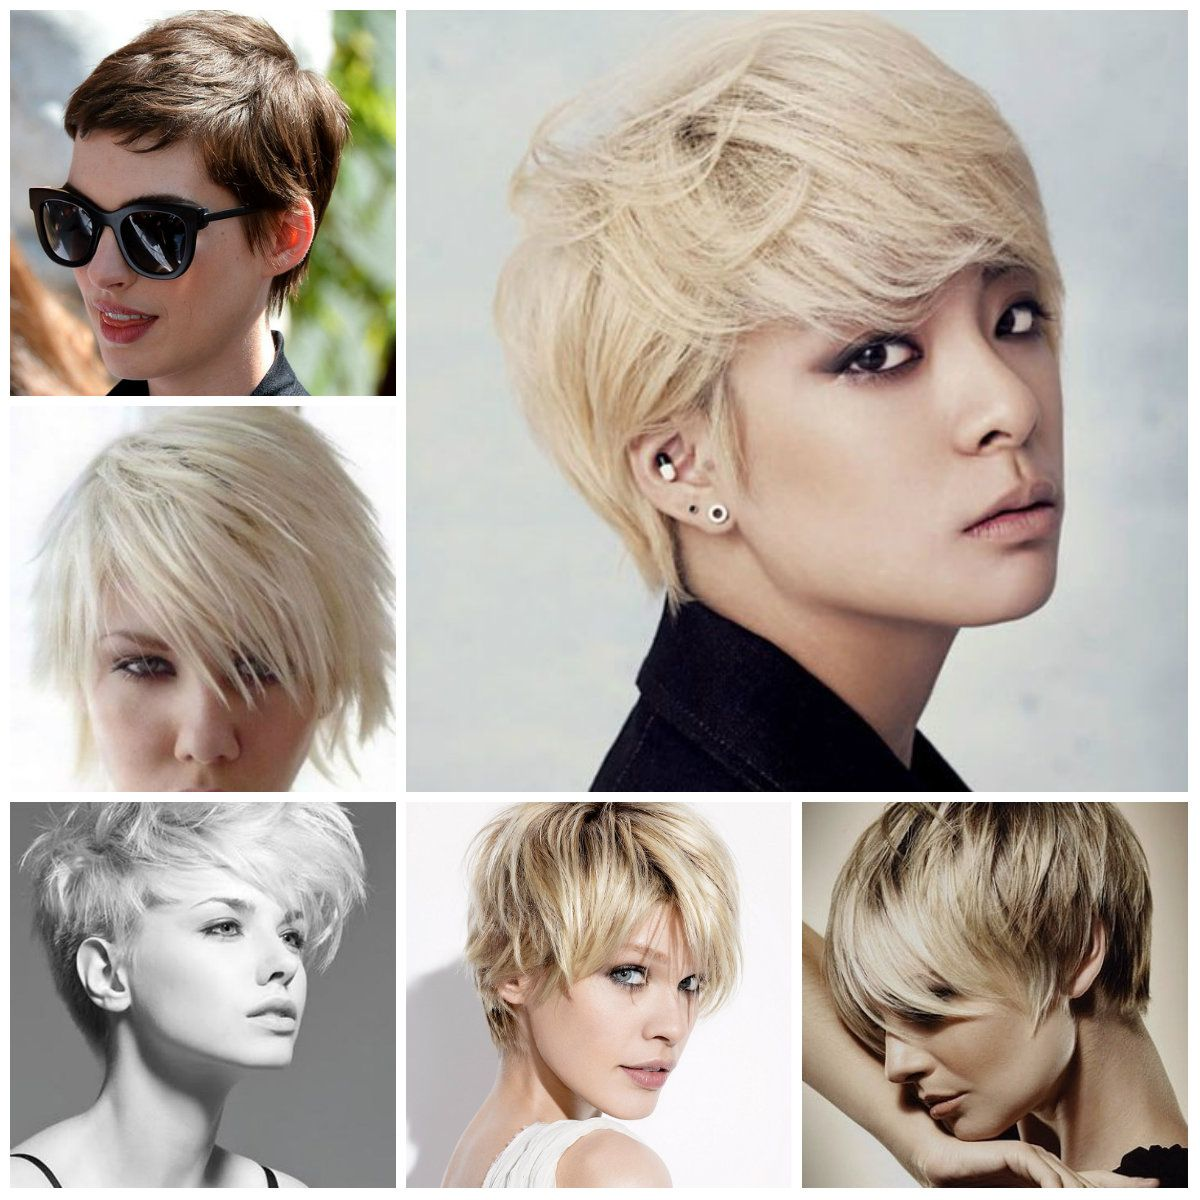 Short hairstyles trendy short hairstyles for women - Trendy Hairstyles 2015 2016 For Long Medium And Short Hair